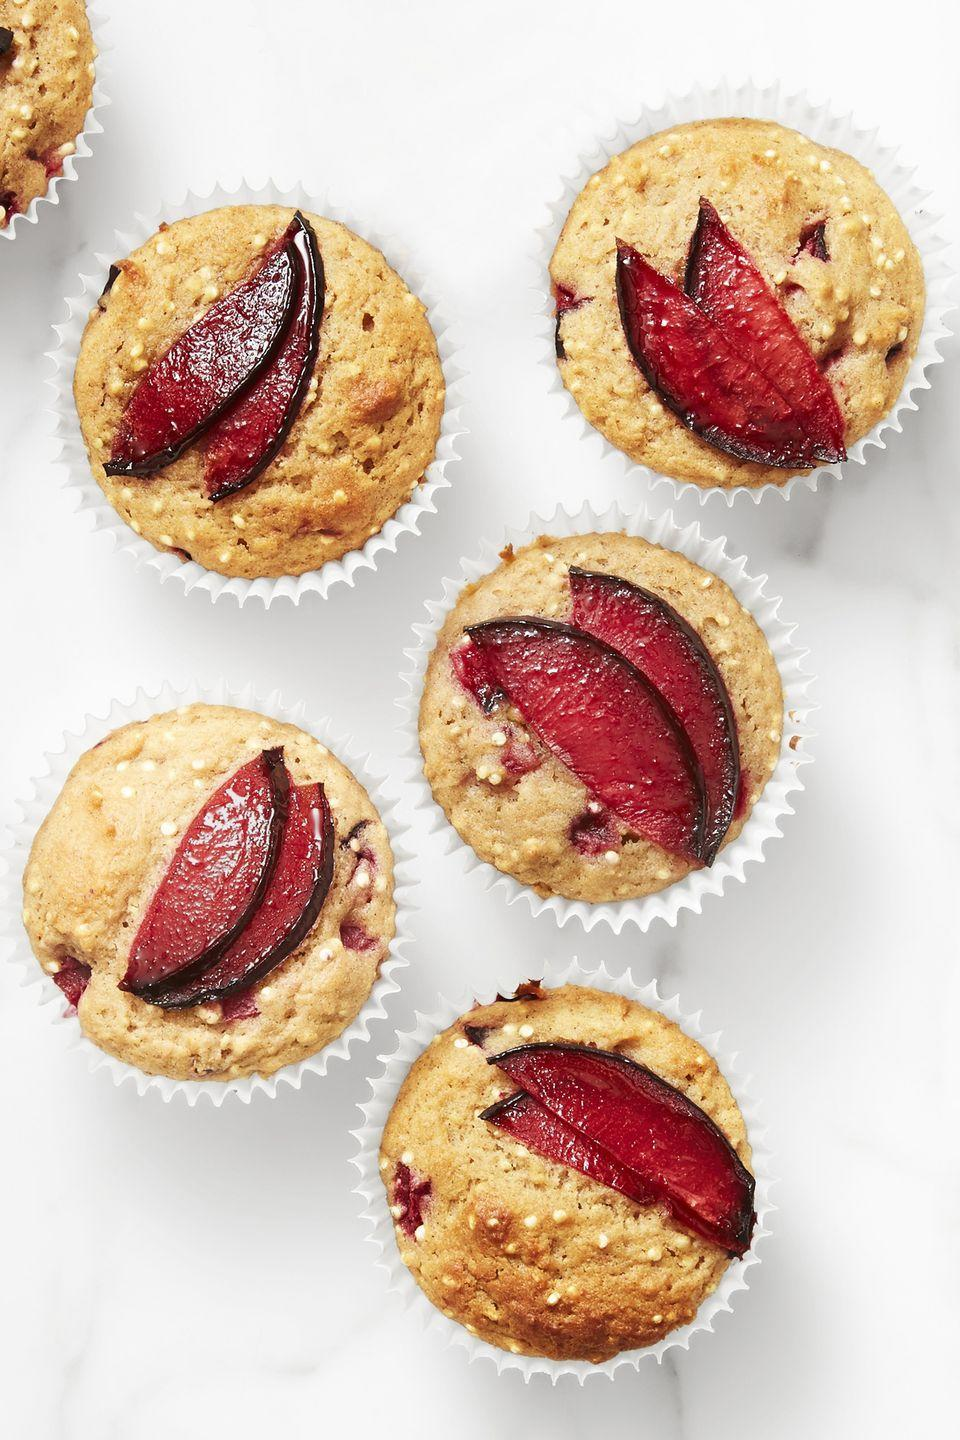 "<p>These protein-packed muffins come together in just 20 minutes. Pop 'em in the oven on Sunday night and breakfast is set for the week ahead.</p><p><em><a href=""https://www.goodhousekeeping.com/food-recipes/easy/a34115/paprika-parmesan-granola-bars/"" rel=""nofollow noopener"" target=""_blank"" data-ylk=""slk:Get the recipe for Spiced Plum and Quinoa Muffins »"" class=""link rapid-noclick-resp"">Get the recipe for Spiced Plum and Quinoa Muffins »</a></em></p>"